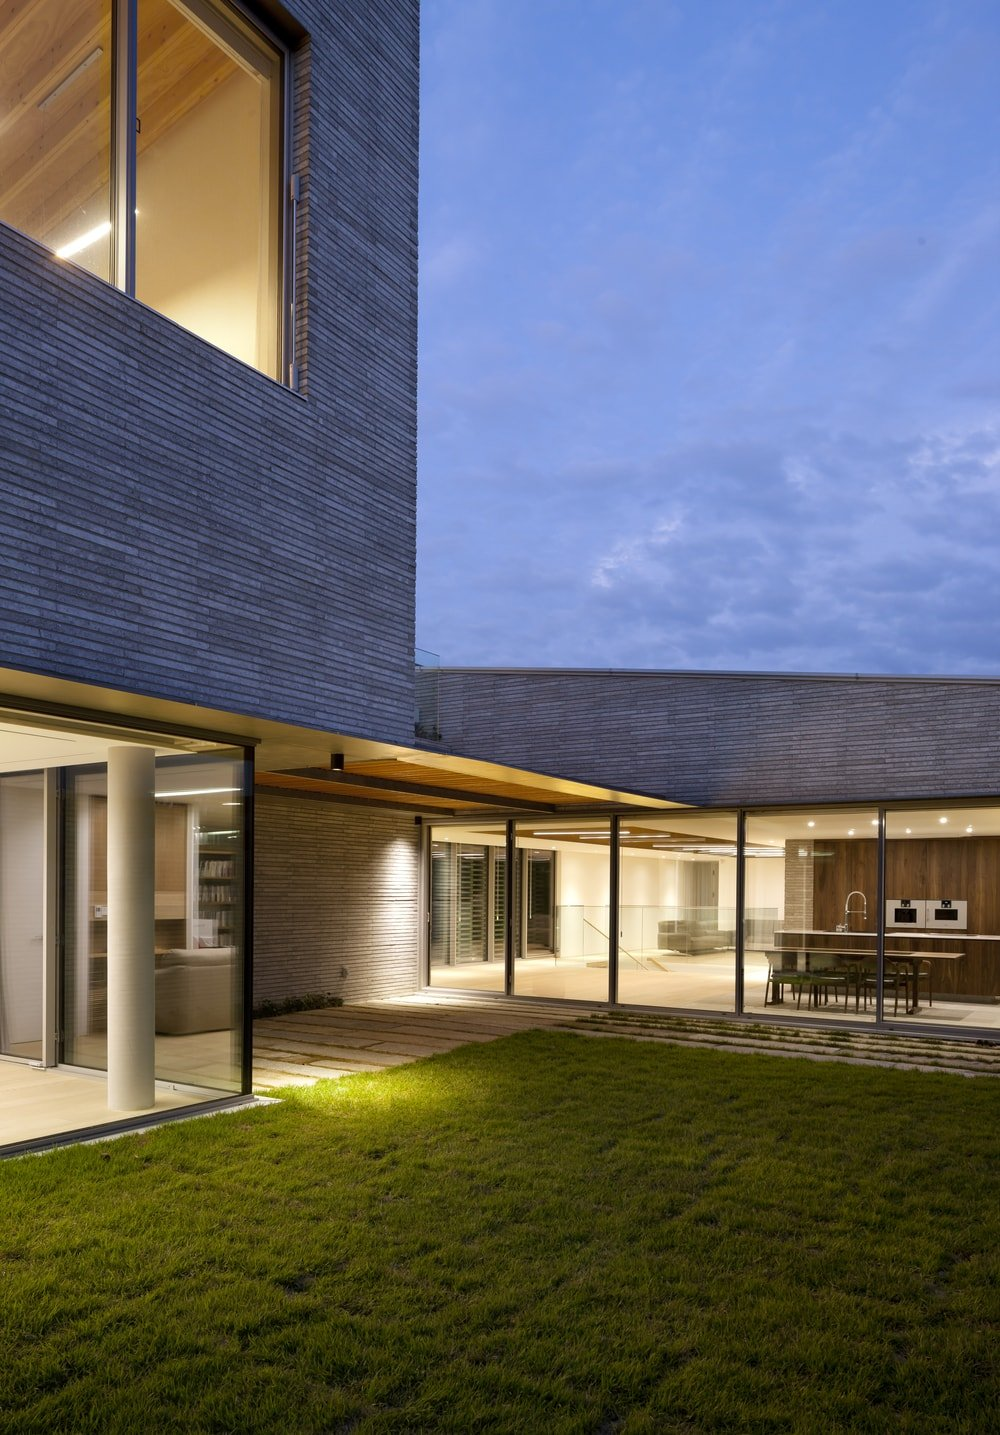 This is a nighttime view of the house walkways and glass walls giving the interior a seamless transition.